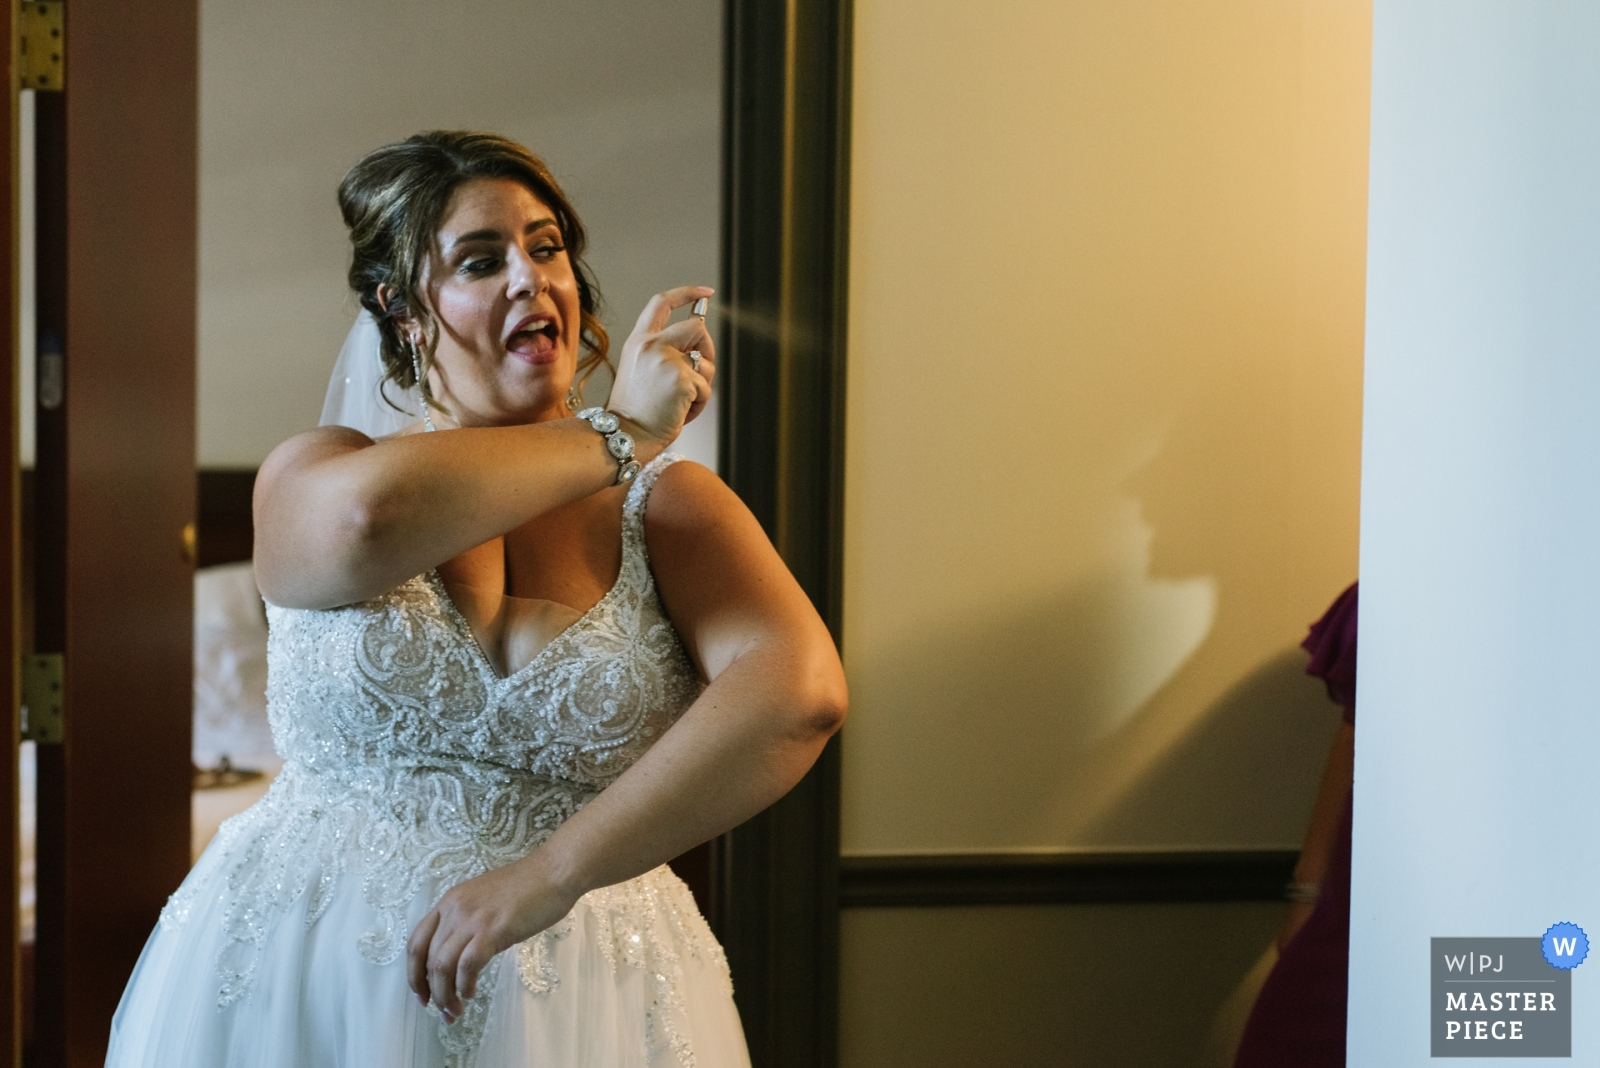 A bride spritzes a bridesmaid, who can only be seen by her shadow, with perfume. - Schenectady, New York - Upstate Wedding Photography -  | The Belvedere Inn